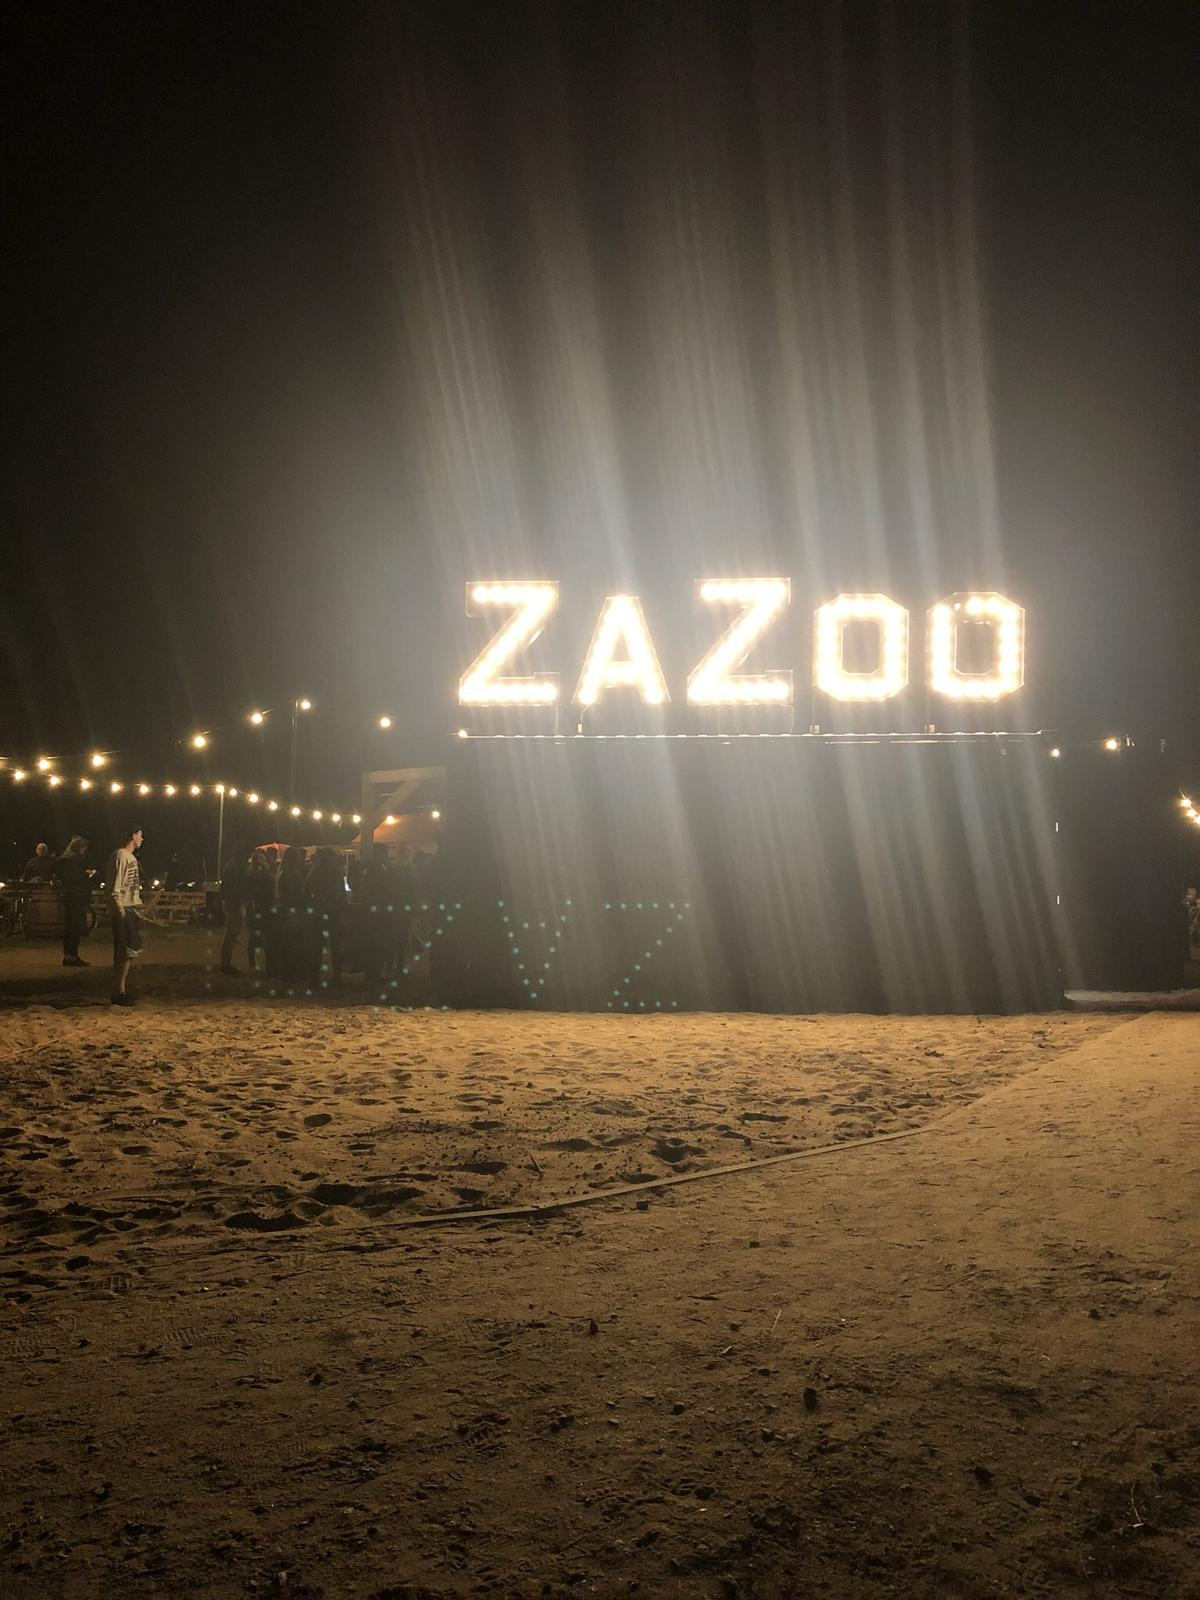 Some pictures of ZaZoo beach bar